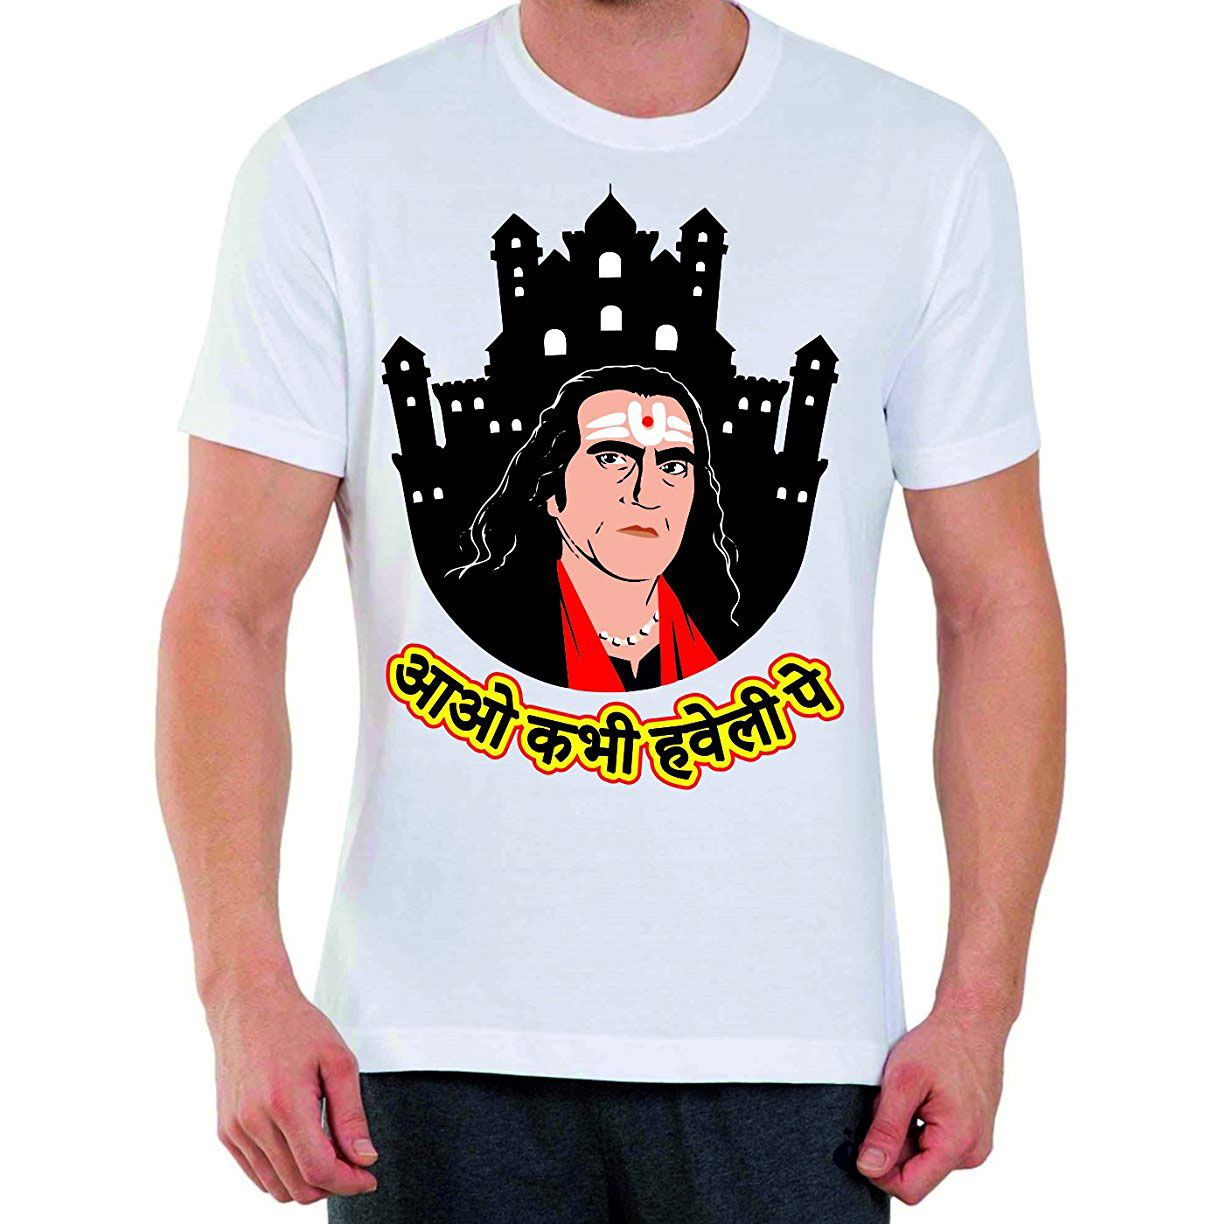 e9558dd6c ... #FamousDialoge #WhiteTshirtForBoys #AwesomeTshirt #FunnyQuote  #FilmyDialoge #FunnyTshirt #CoolTshirt SHOP NOW AT @JUST 499 ON www.fantaboy .com